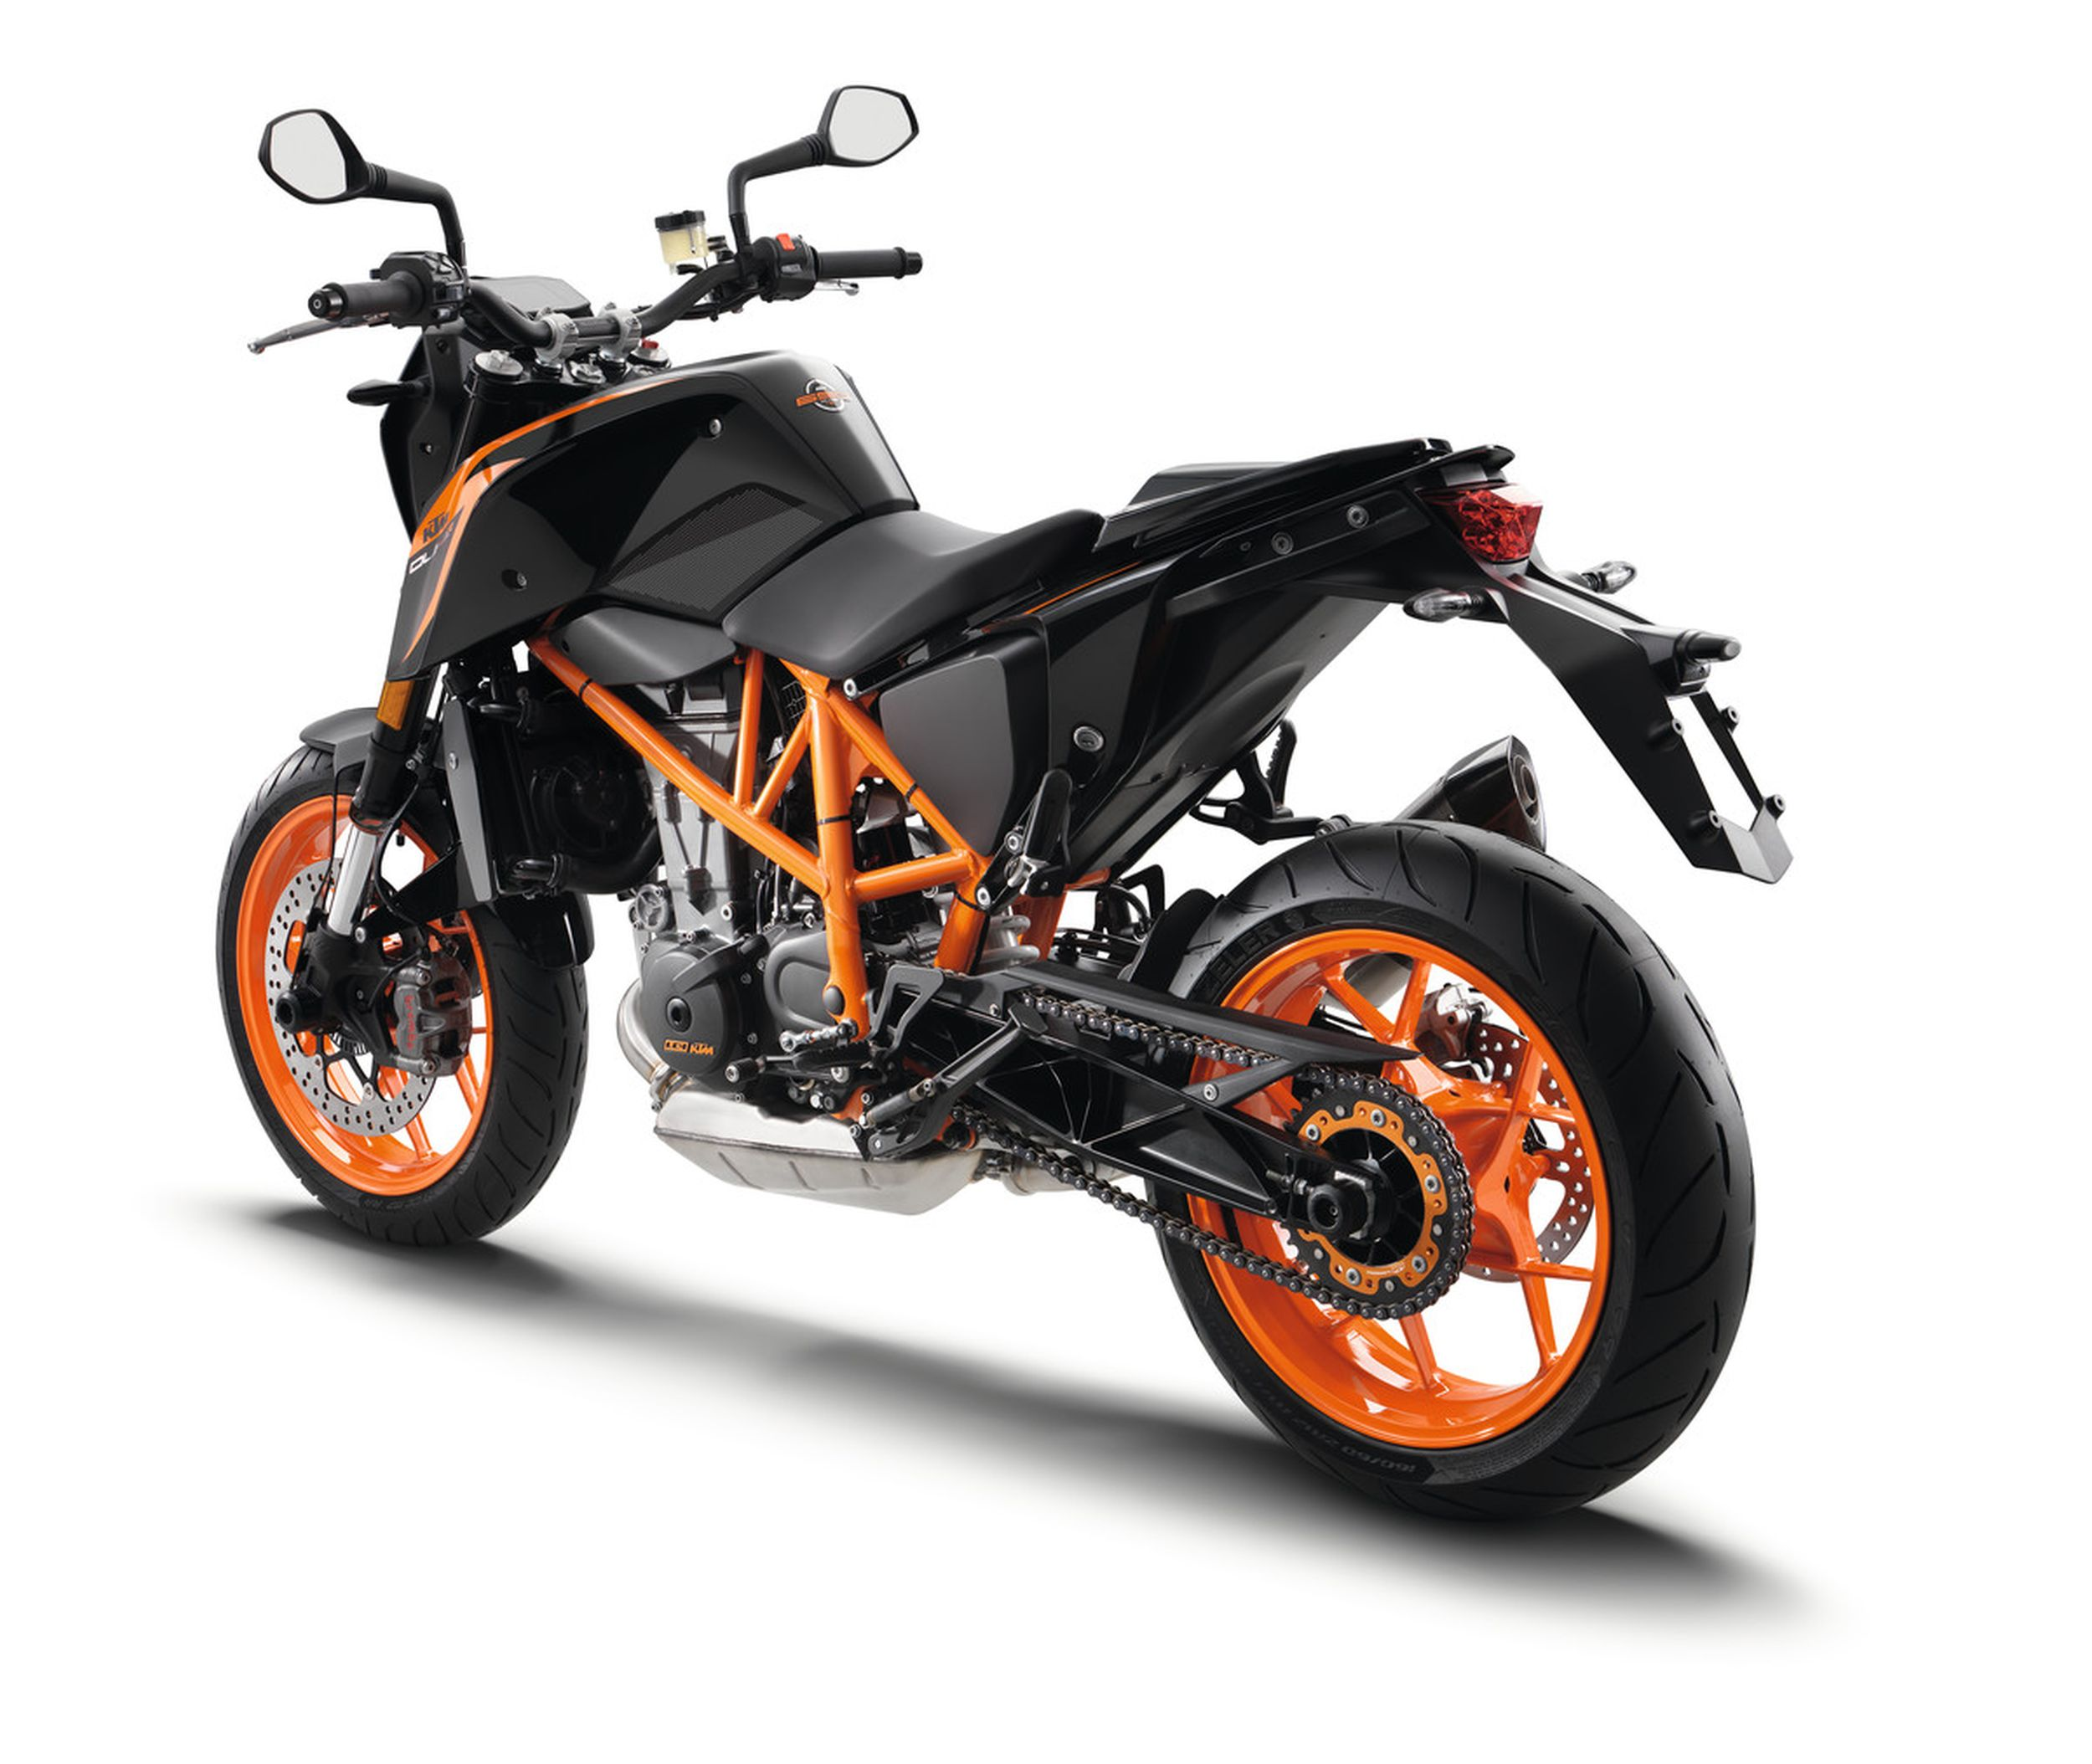 ktm 690 duke r test gebrauchte bilder technische daten. Black Bedroom Furniture Sets. Home Design Ideas